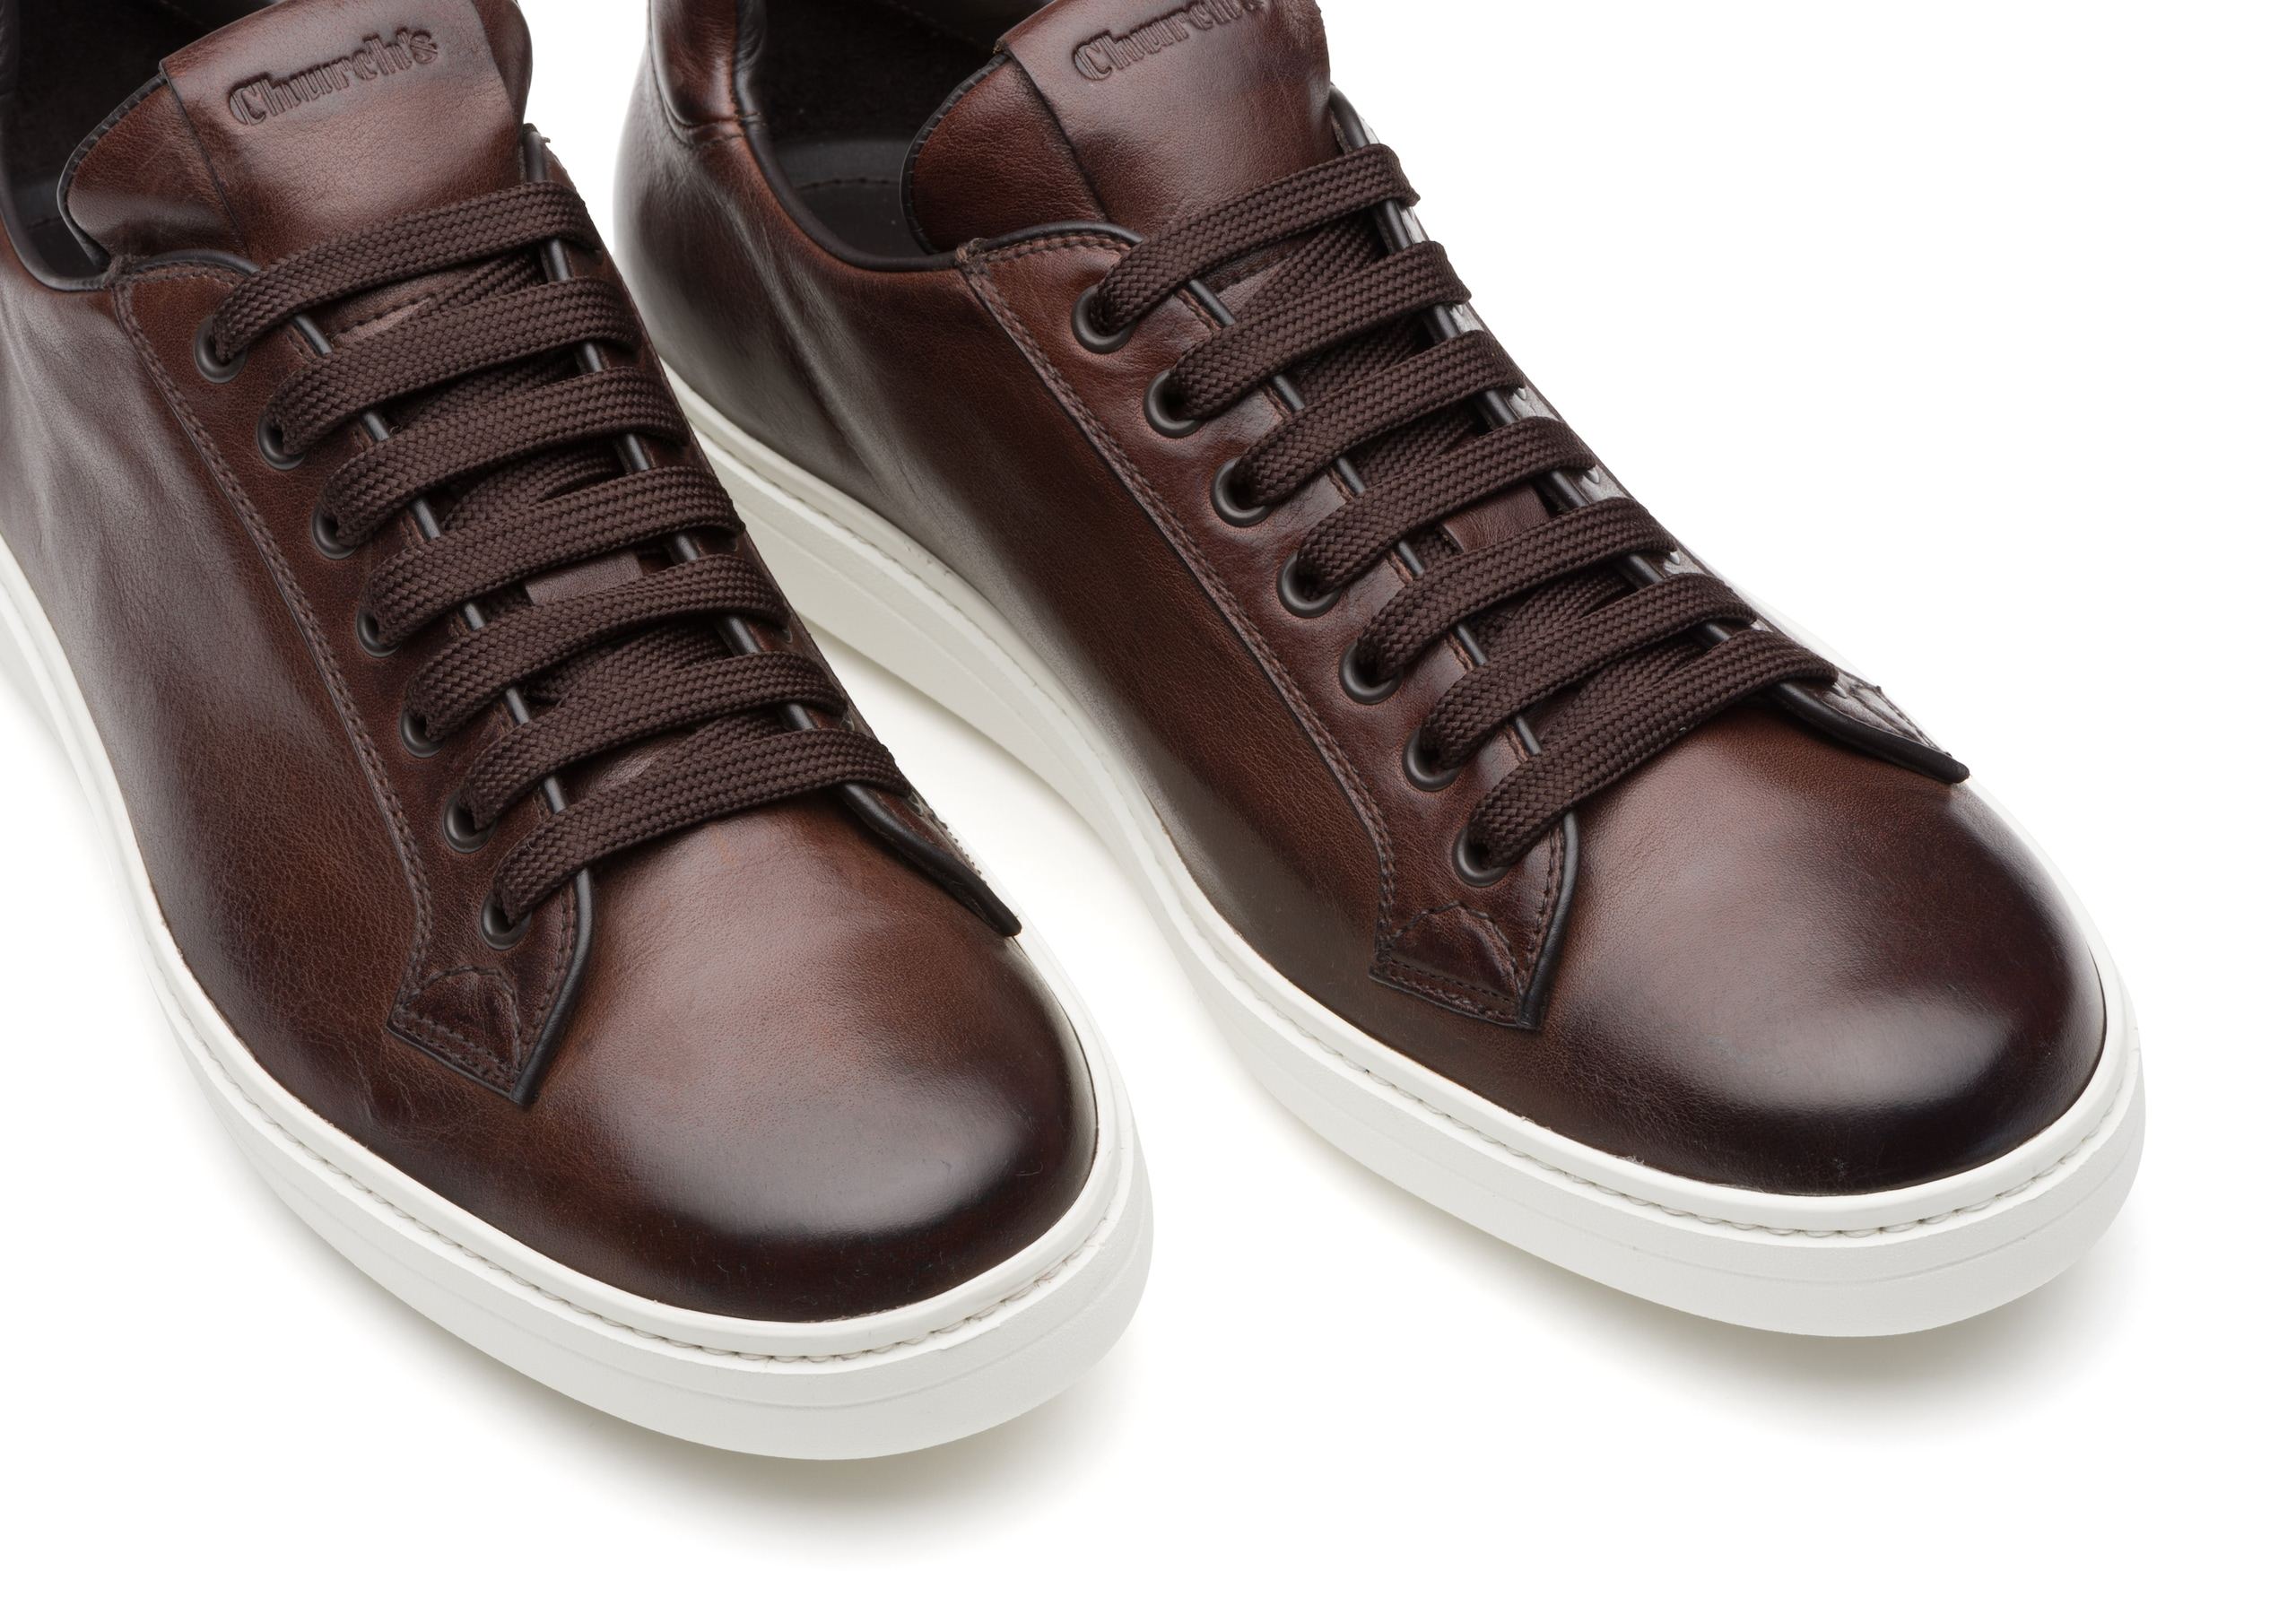 Boland plus Church's Vintage Calf Leather Classic Sneaker Brown